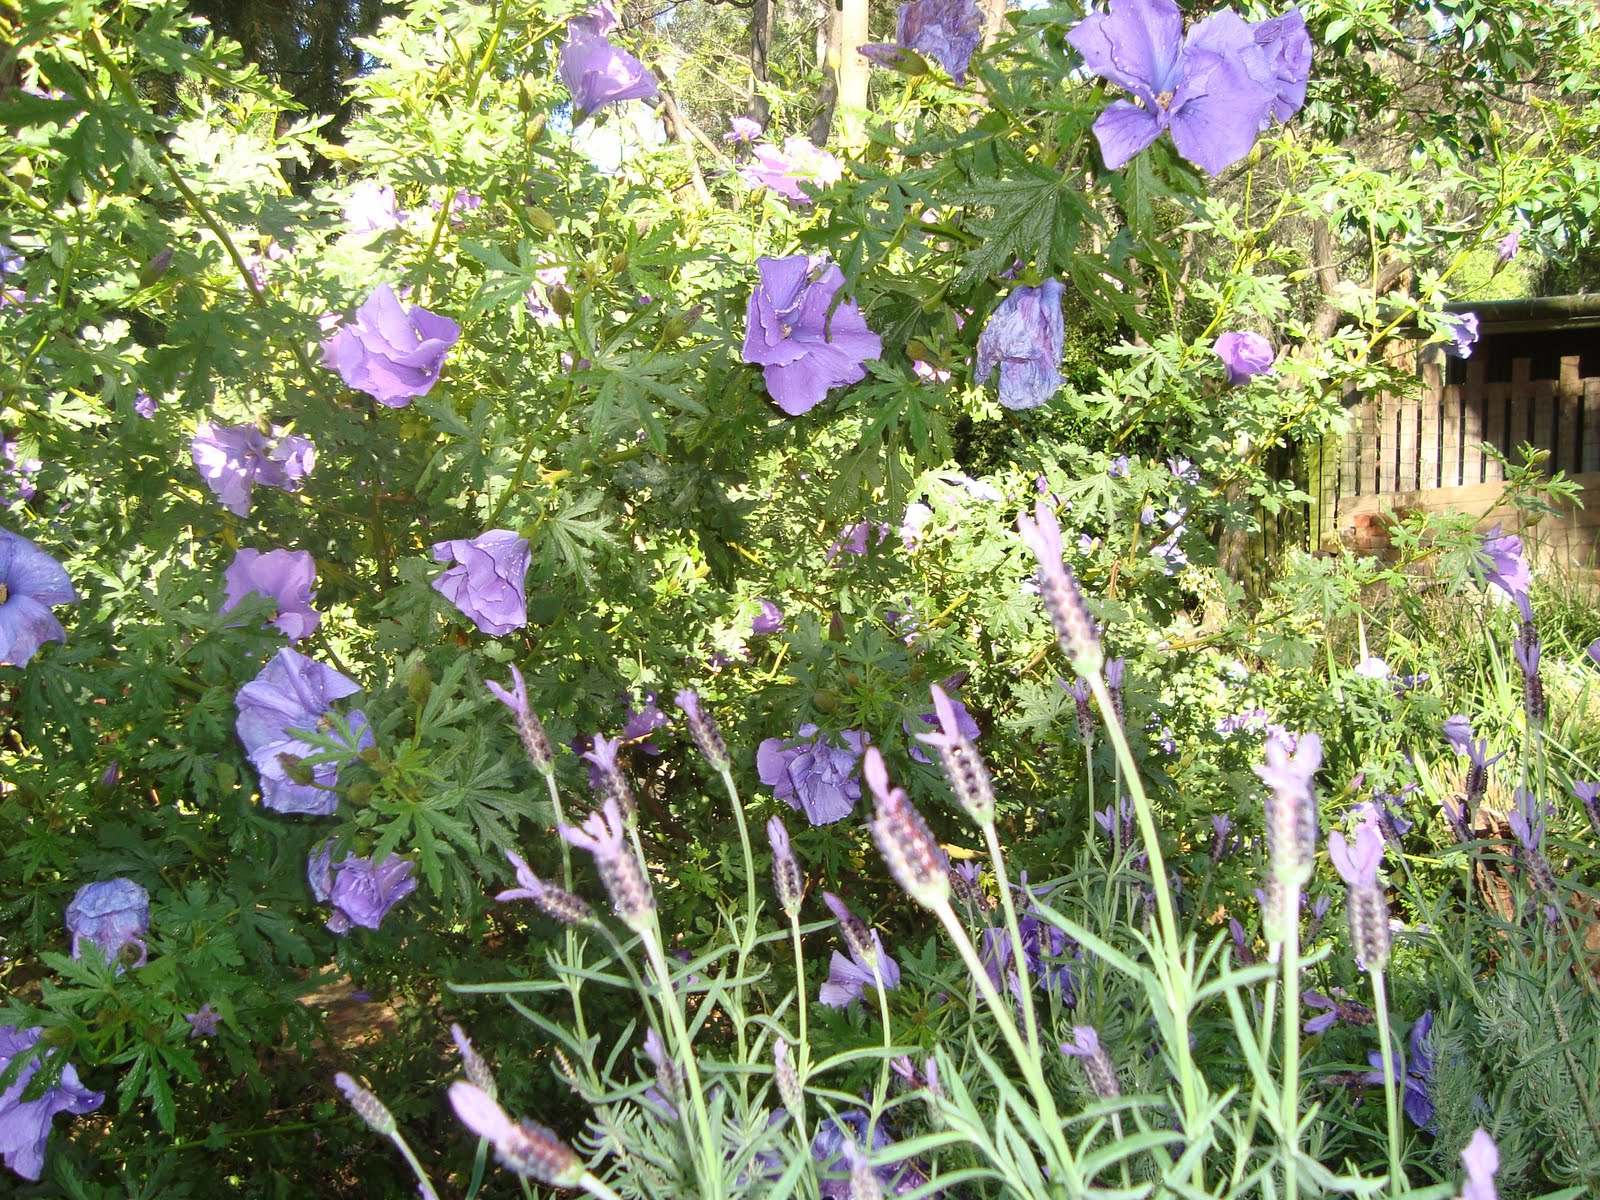 Purple Hibiscus Backyard Snob : THESE TWO PLANTS (NATIVE HIBISCUS) AND LAVENDER ARE GROWING PROFUSELY